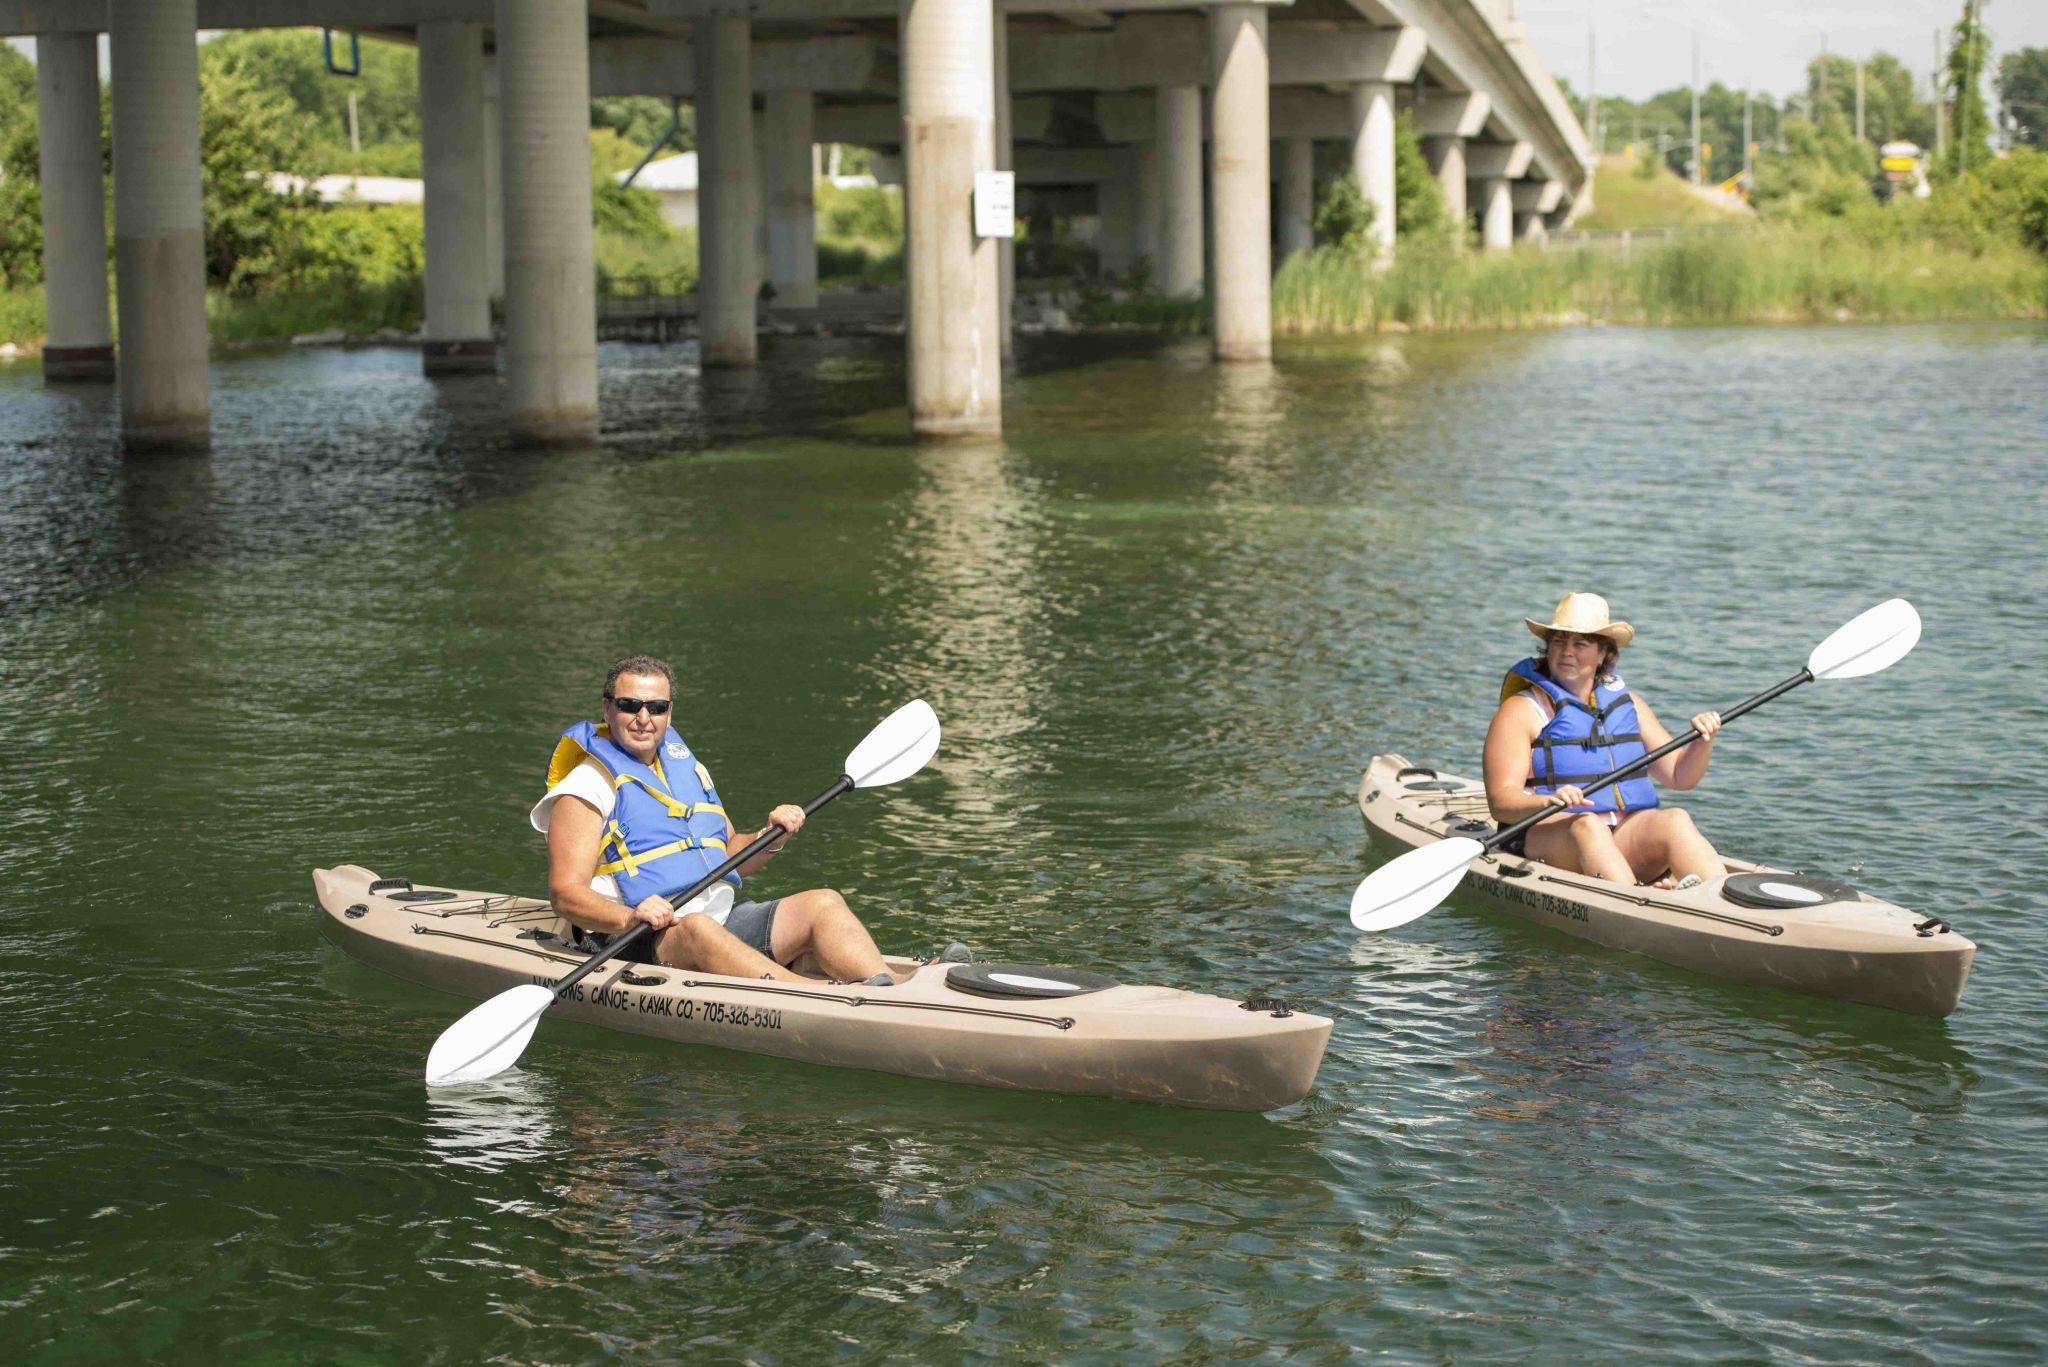 Paddling fish weirs outdoor recreation summer - 10 Amazing Paddle Routes in Orillia and Lake Country